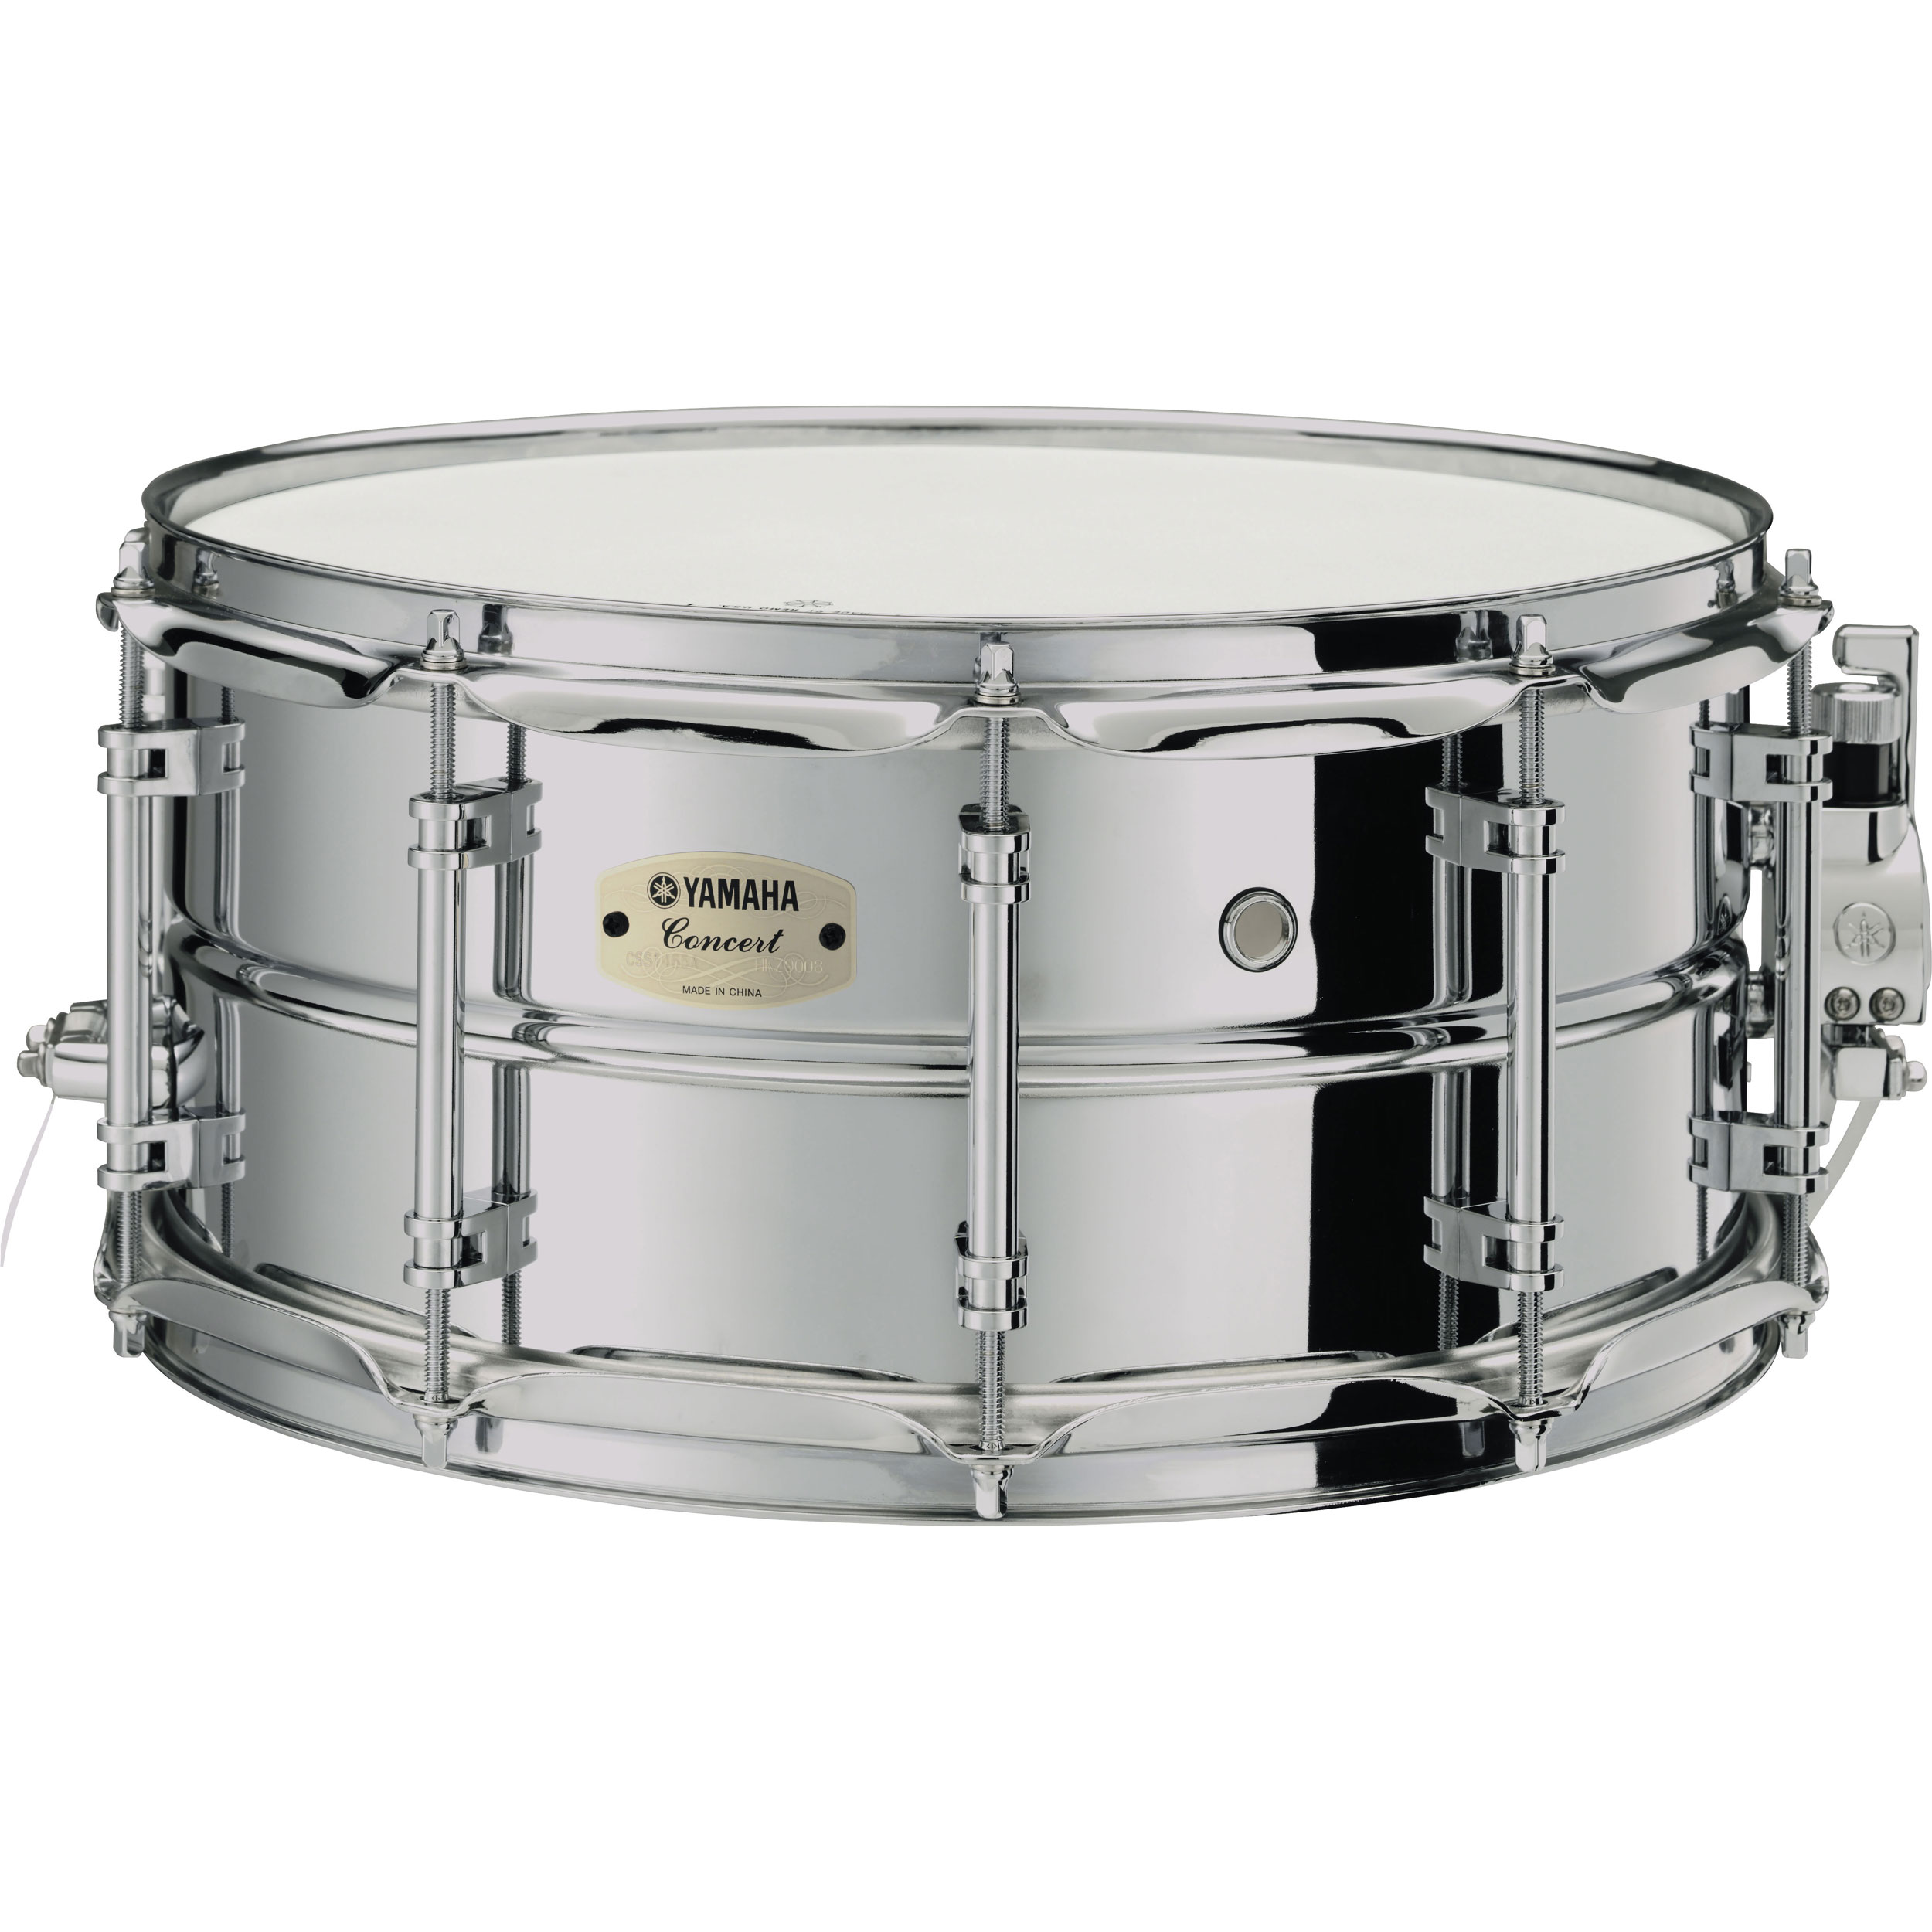 """Yamaha CSS-A Series 14"""" x 6.5"""" Steel Concert Snare Drum"""